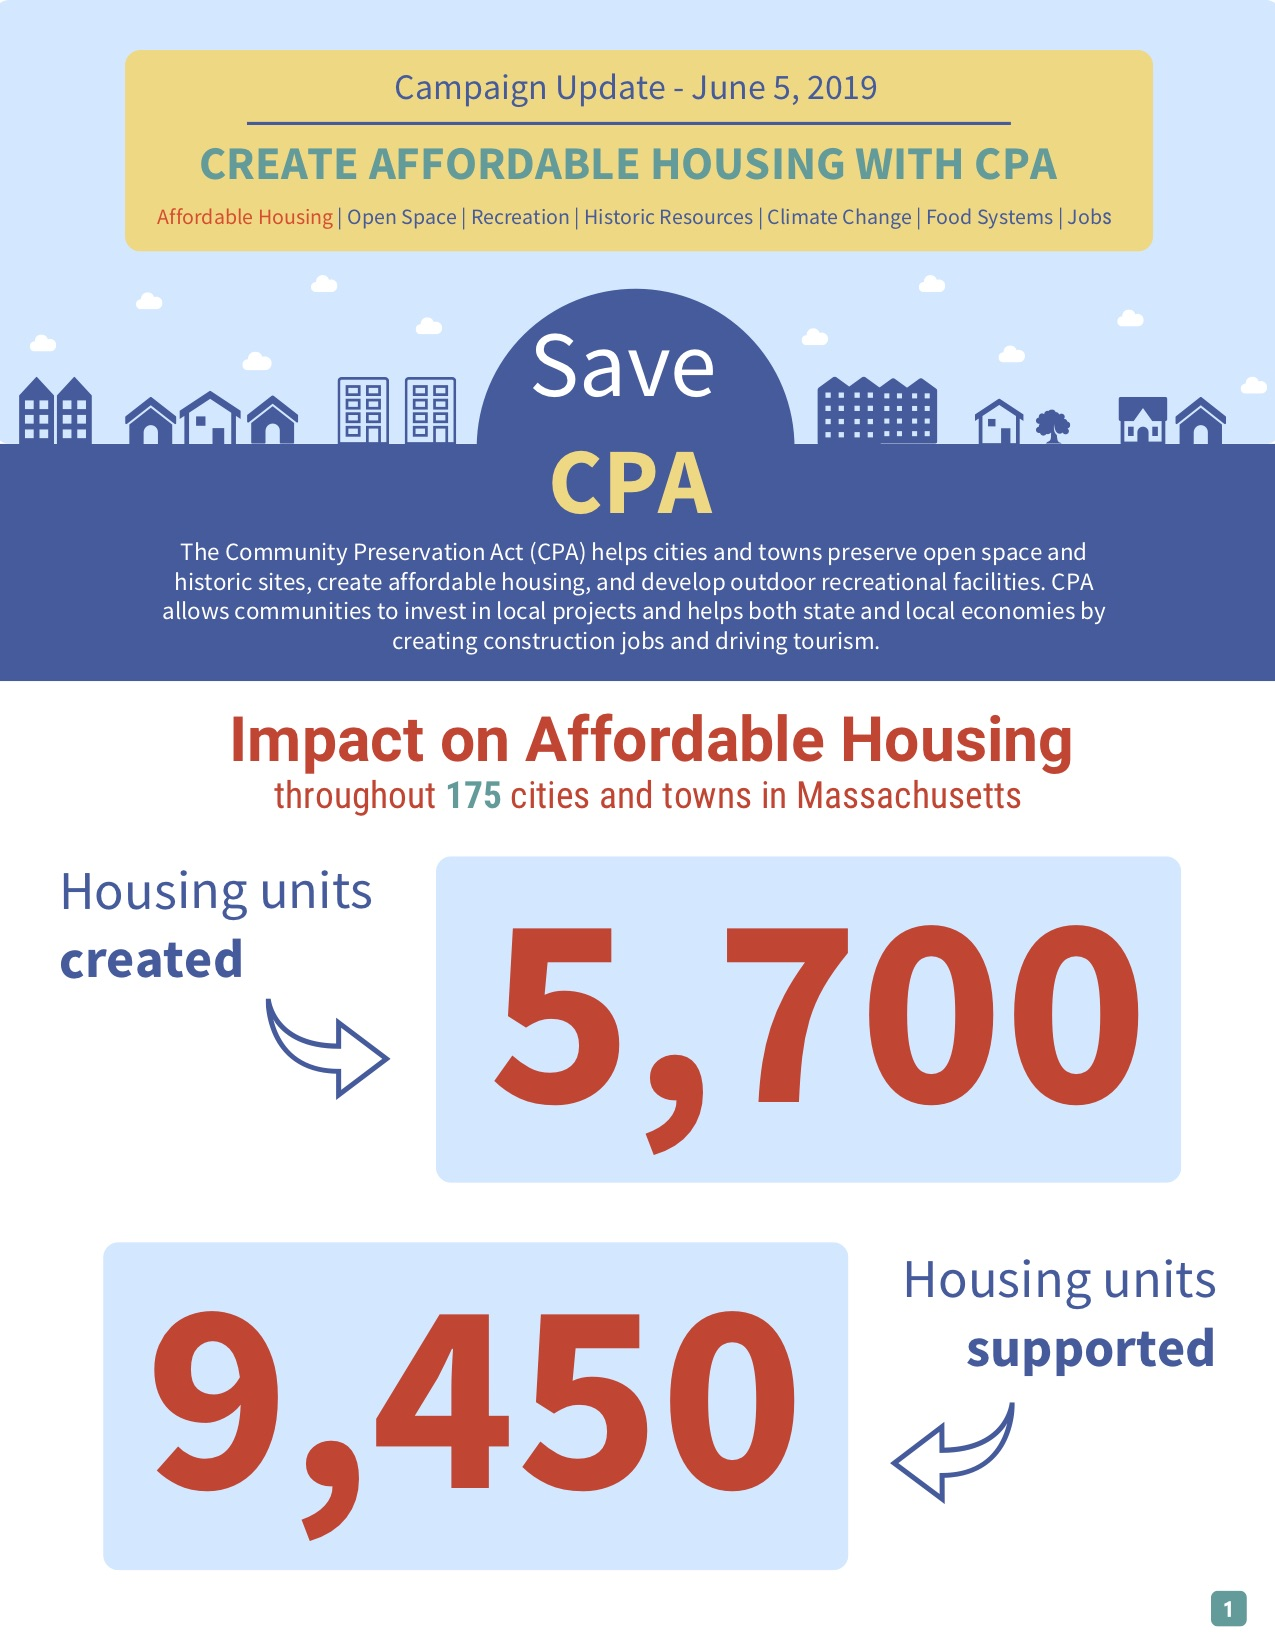 Housing - Click image to access.